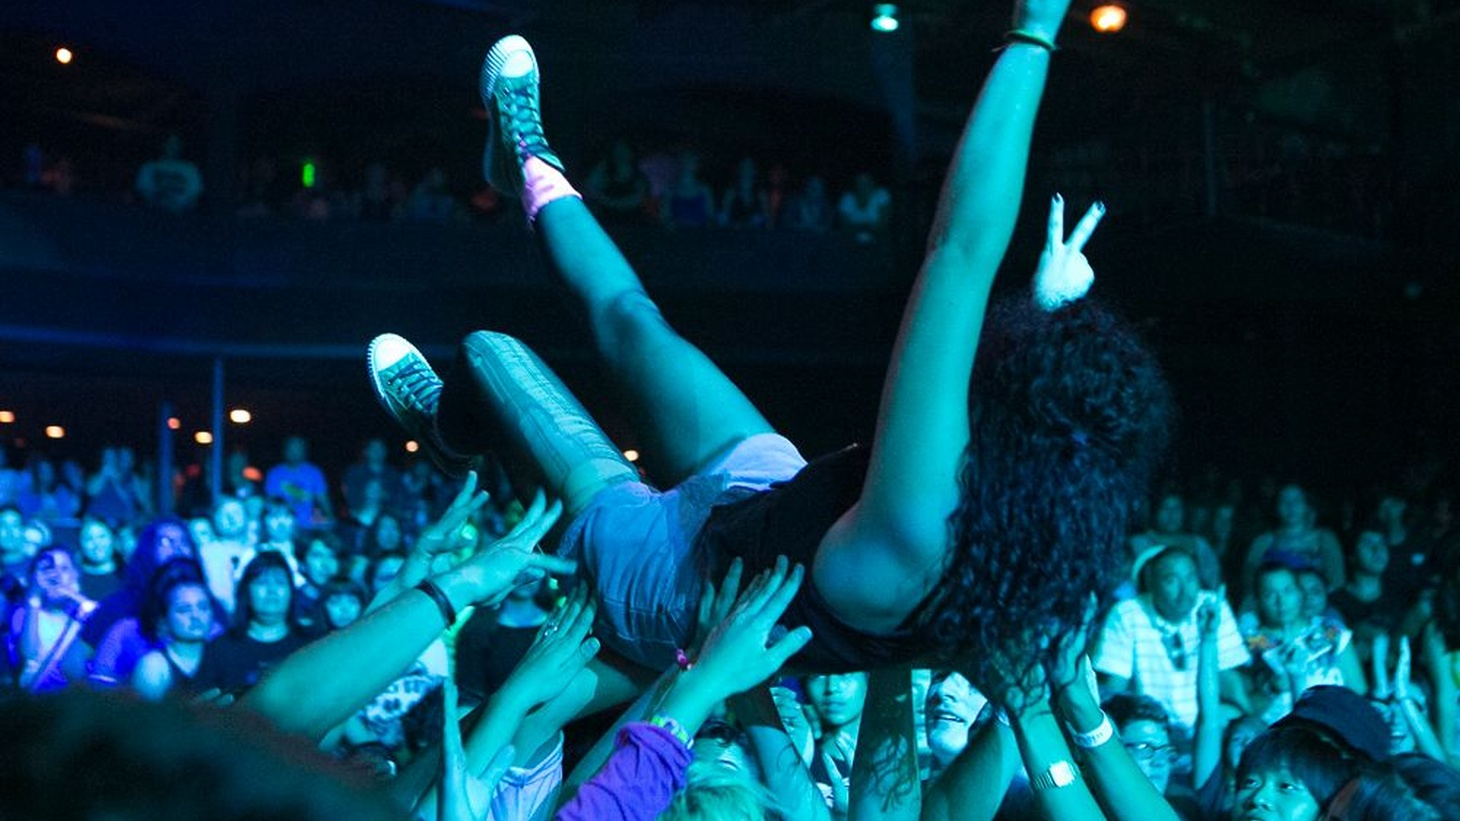 Bands and fans assemble for Burger Records' Burger-A-Go-Go at the Observatory venue in Santa Ana, August 2, 2014.